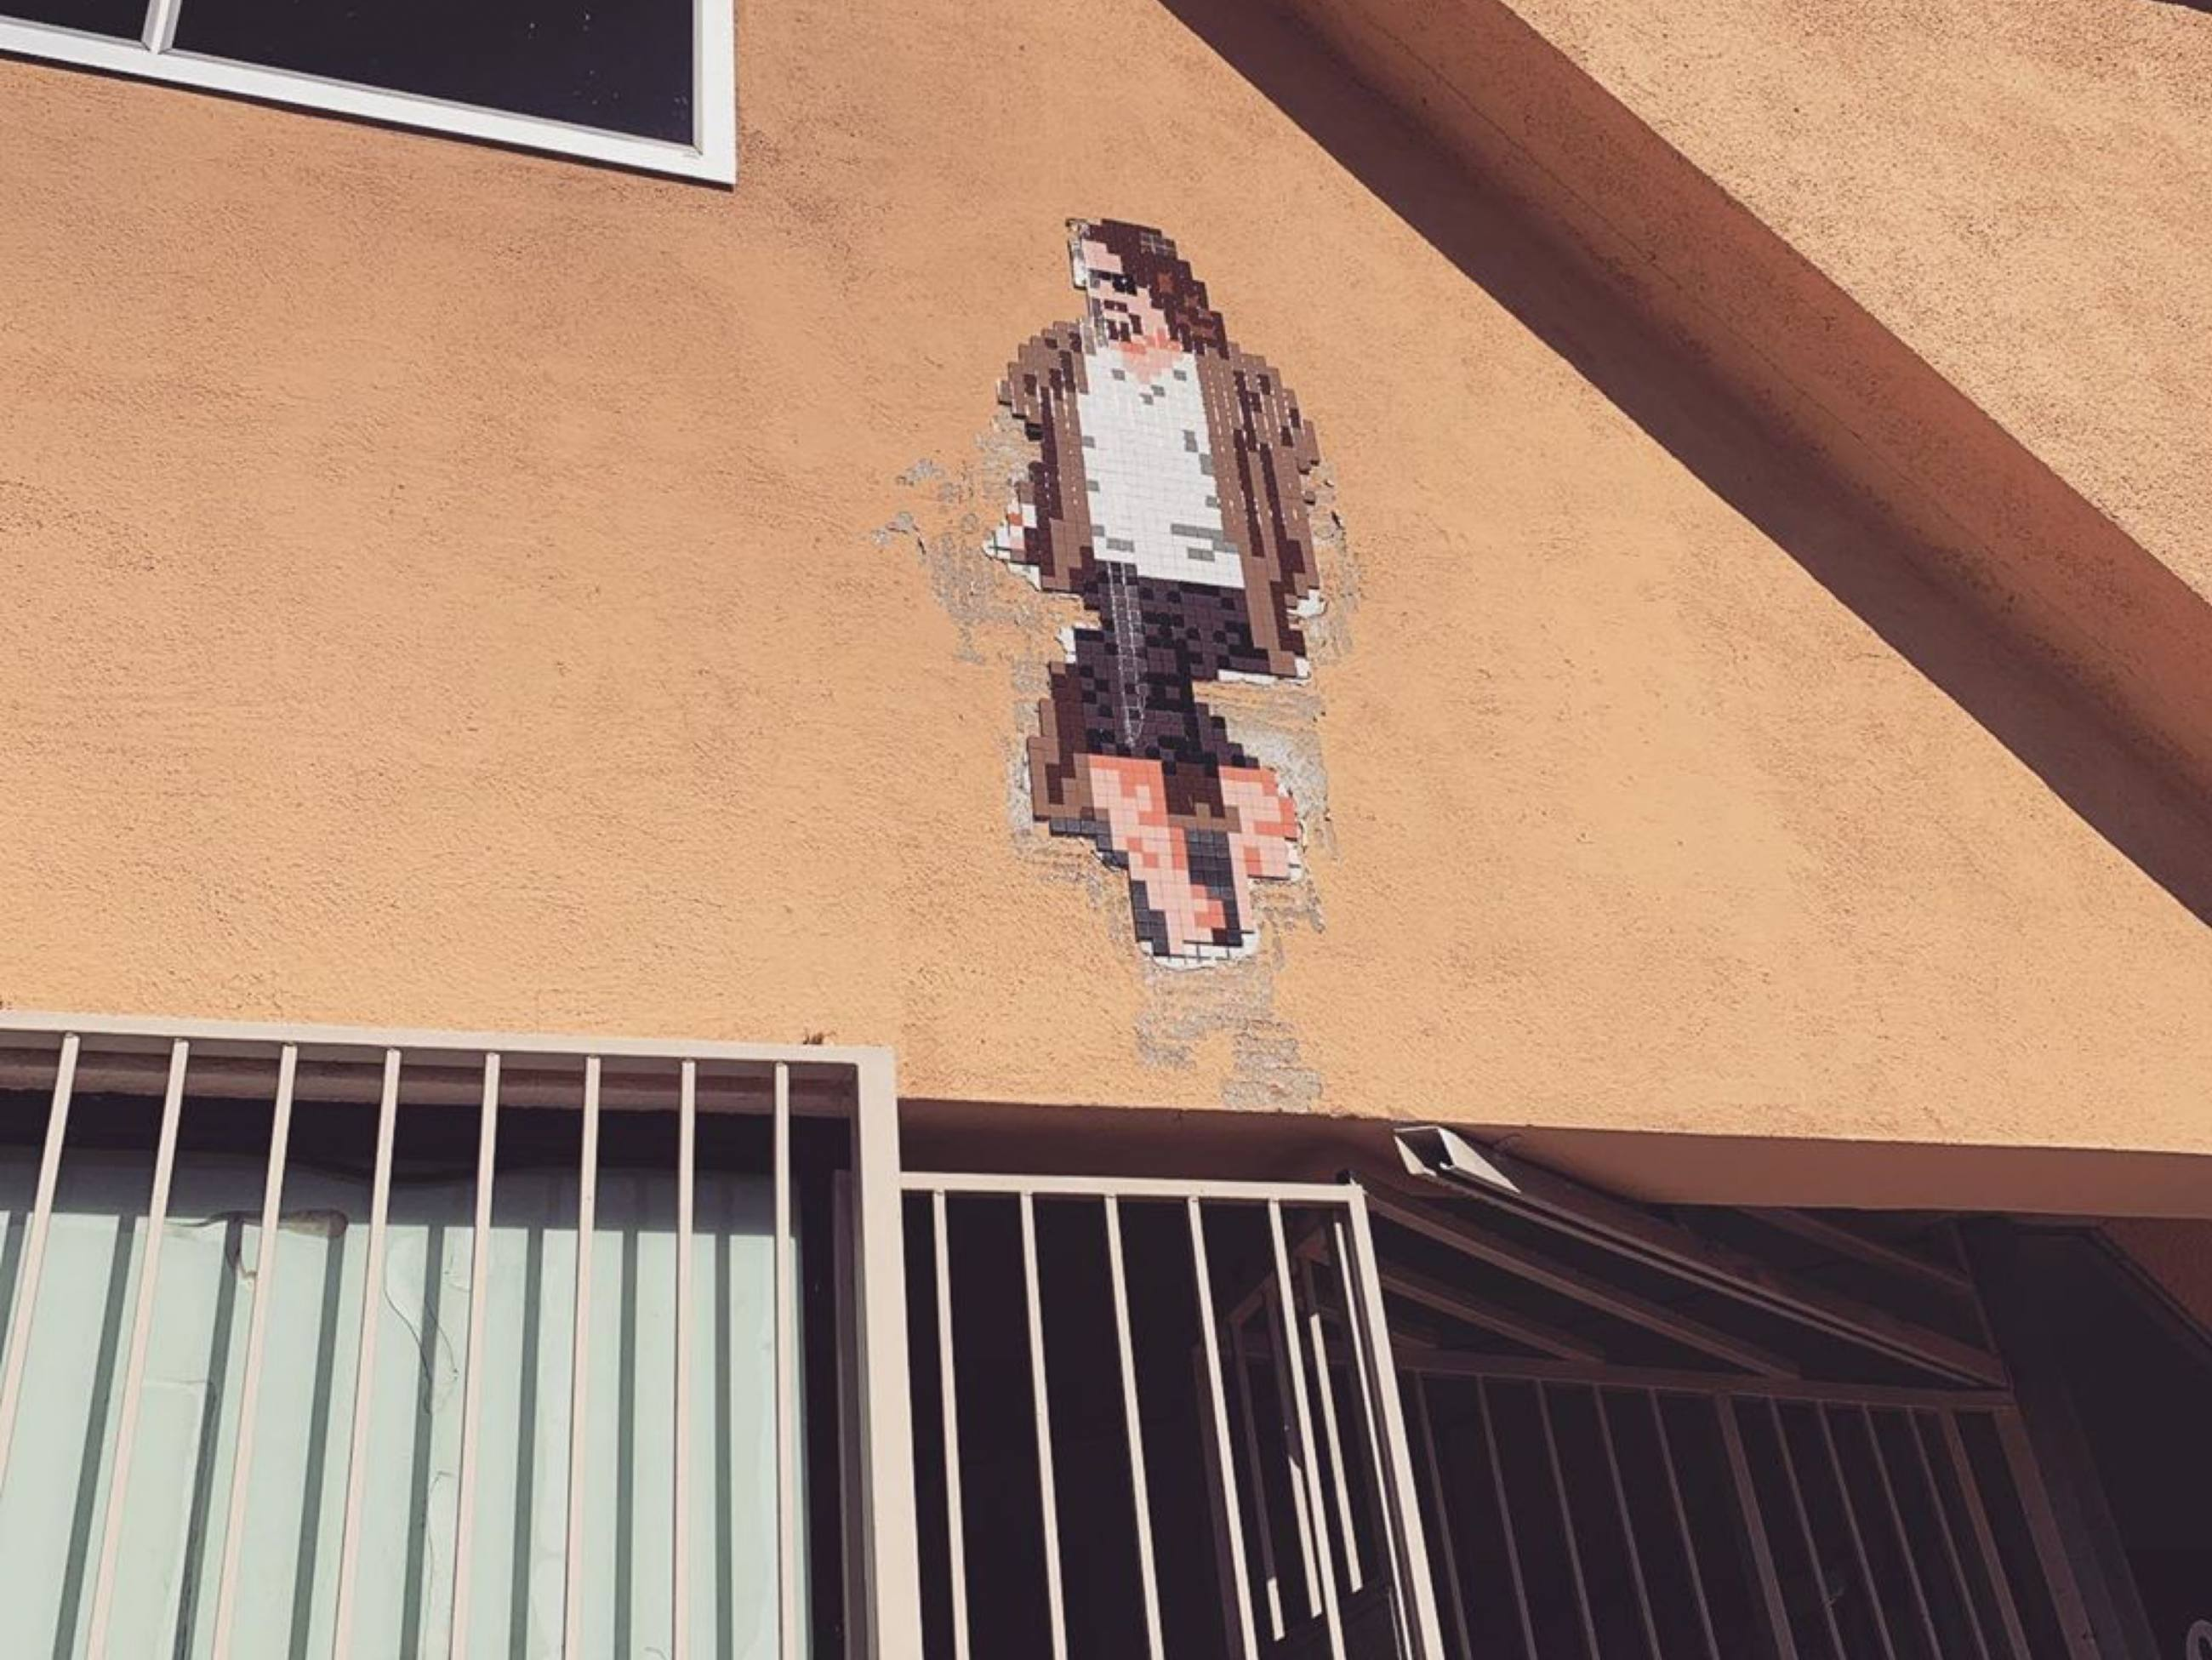 The Dude by Invader at Shatto 39 Lanes in Koreatown